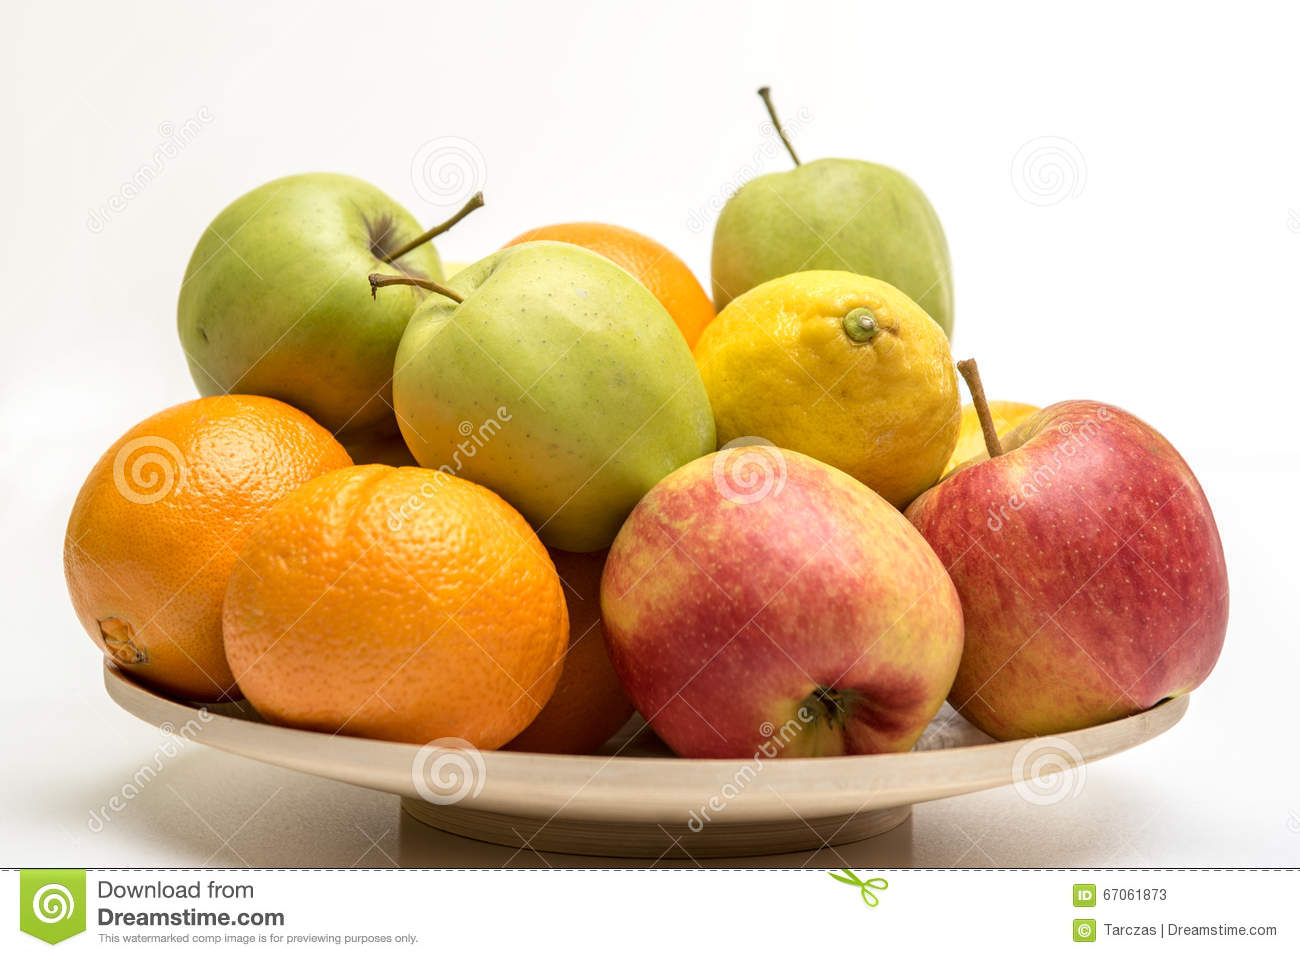 Download Orange, Apples And Banana On The Wooden Plate Stock Image - Image of health, orange: 67061873